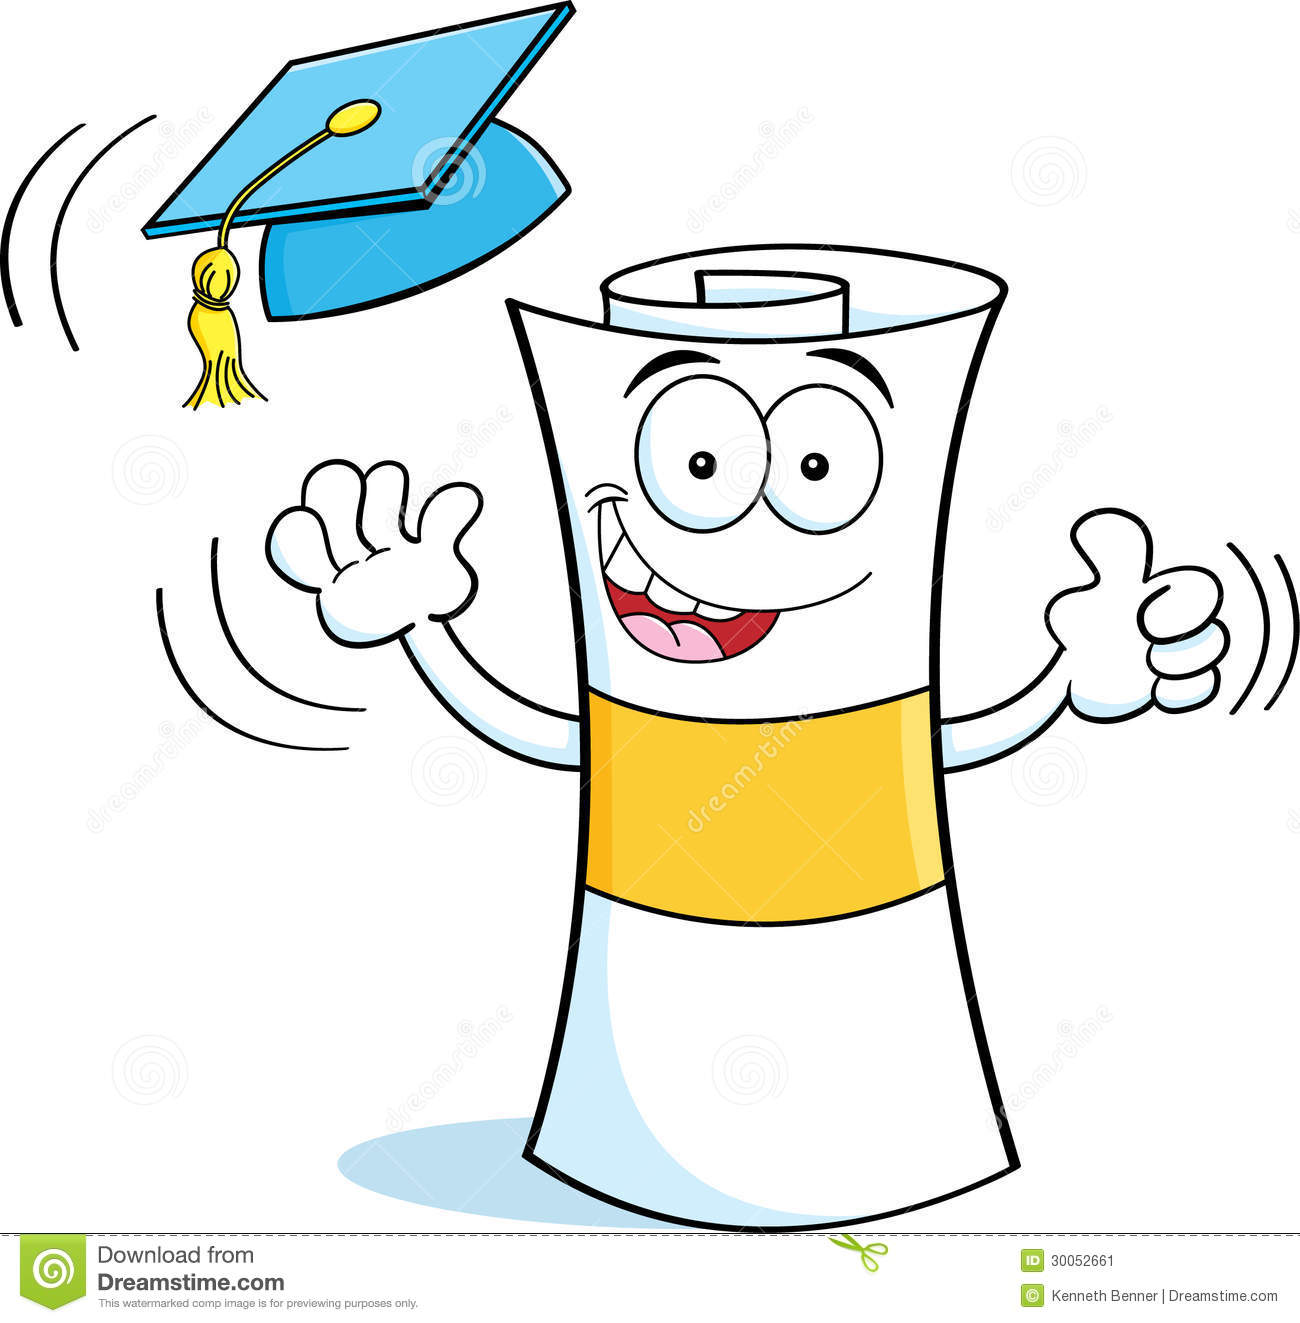 ... illustration of a diploma tossing a graduation cap into the air